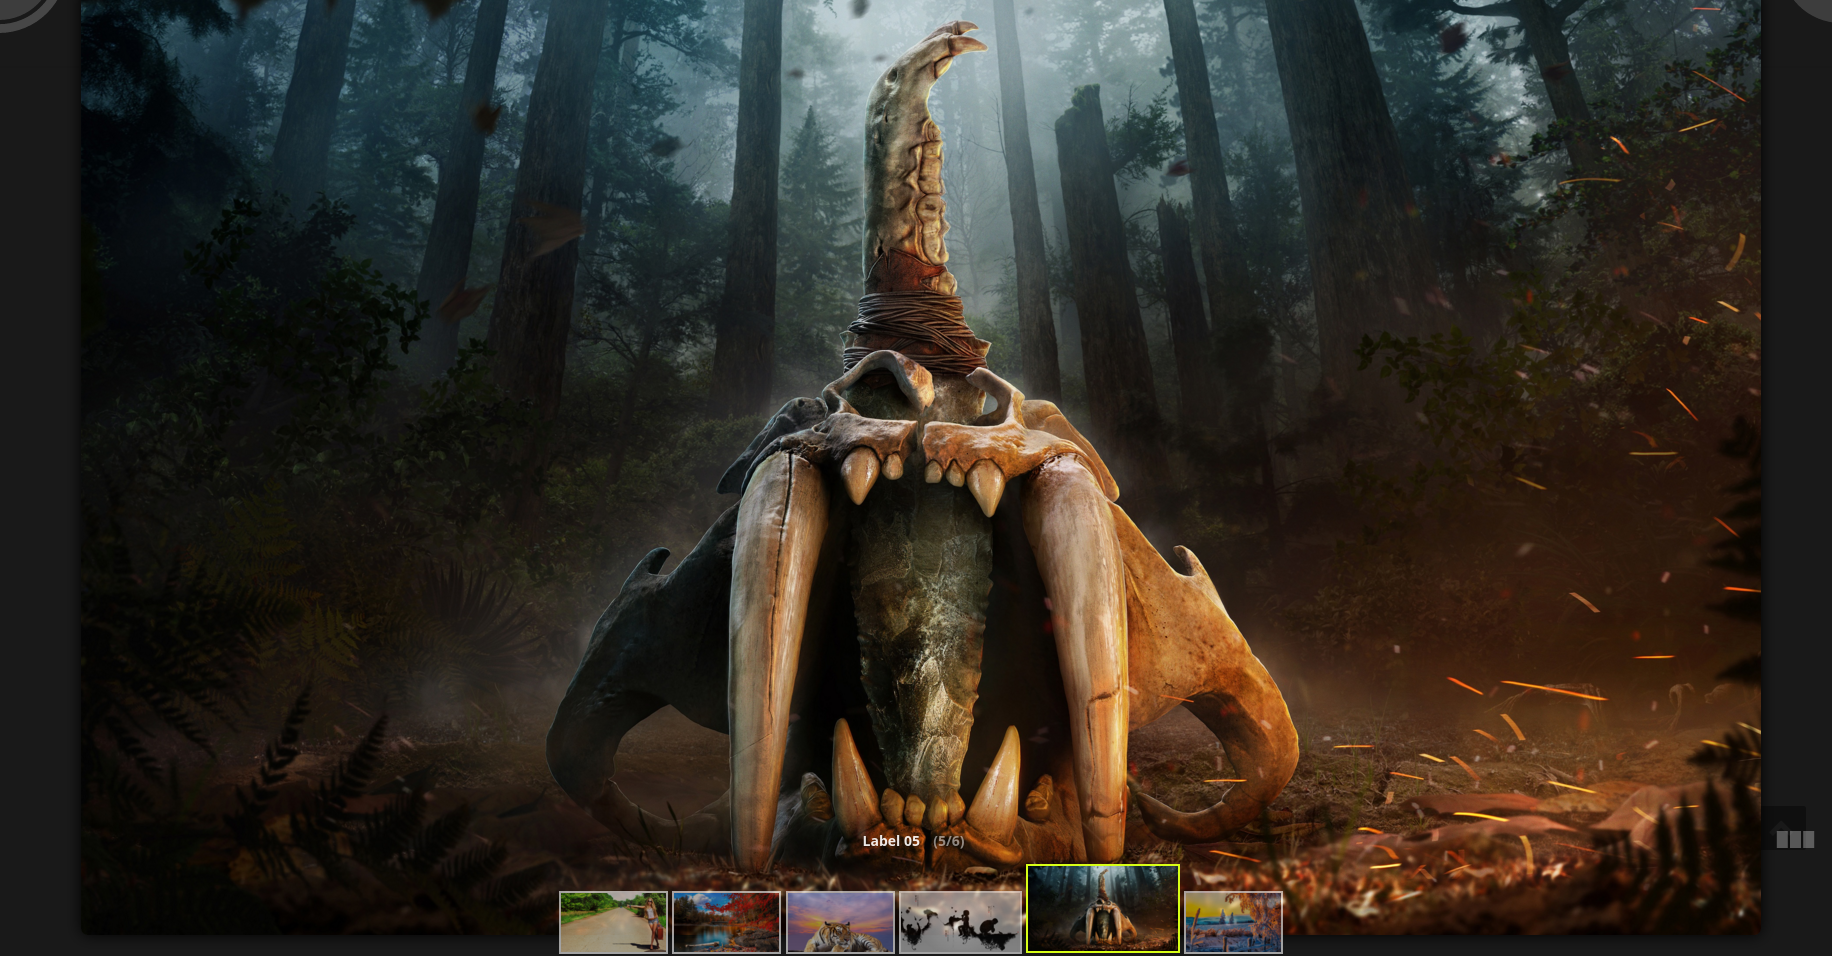 gallery-preview-at-post-into-lightbox-slider-4.4